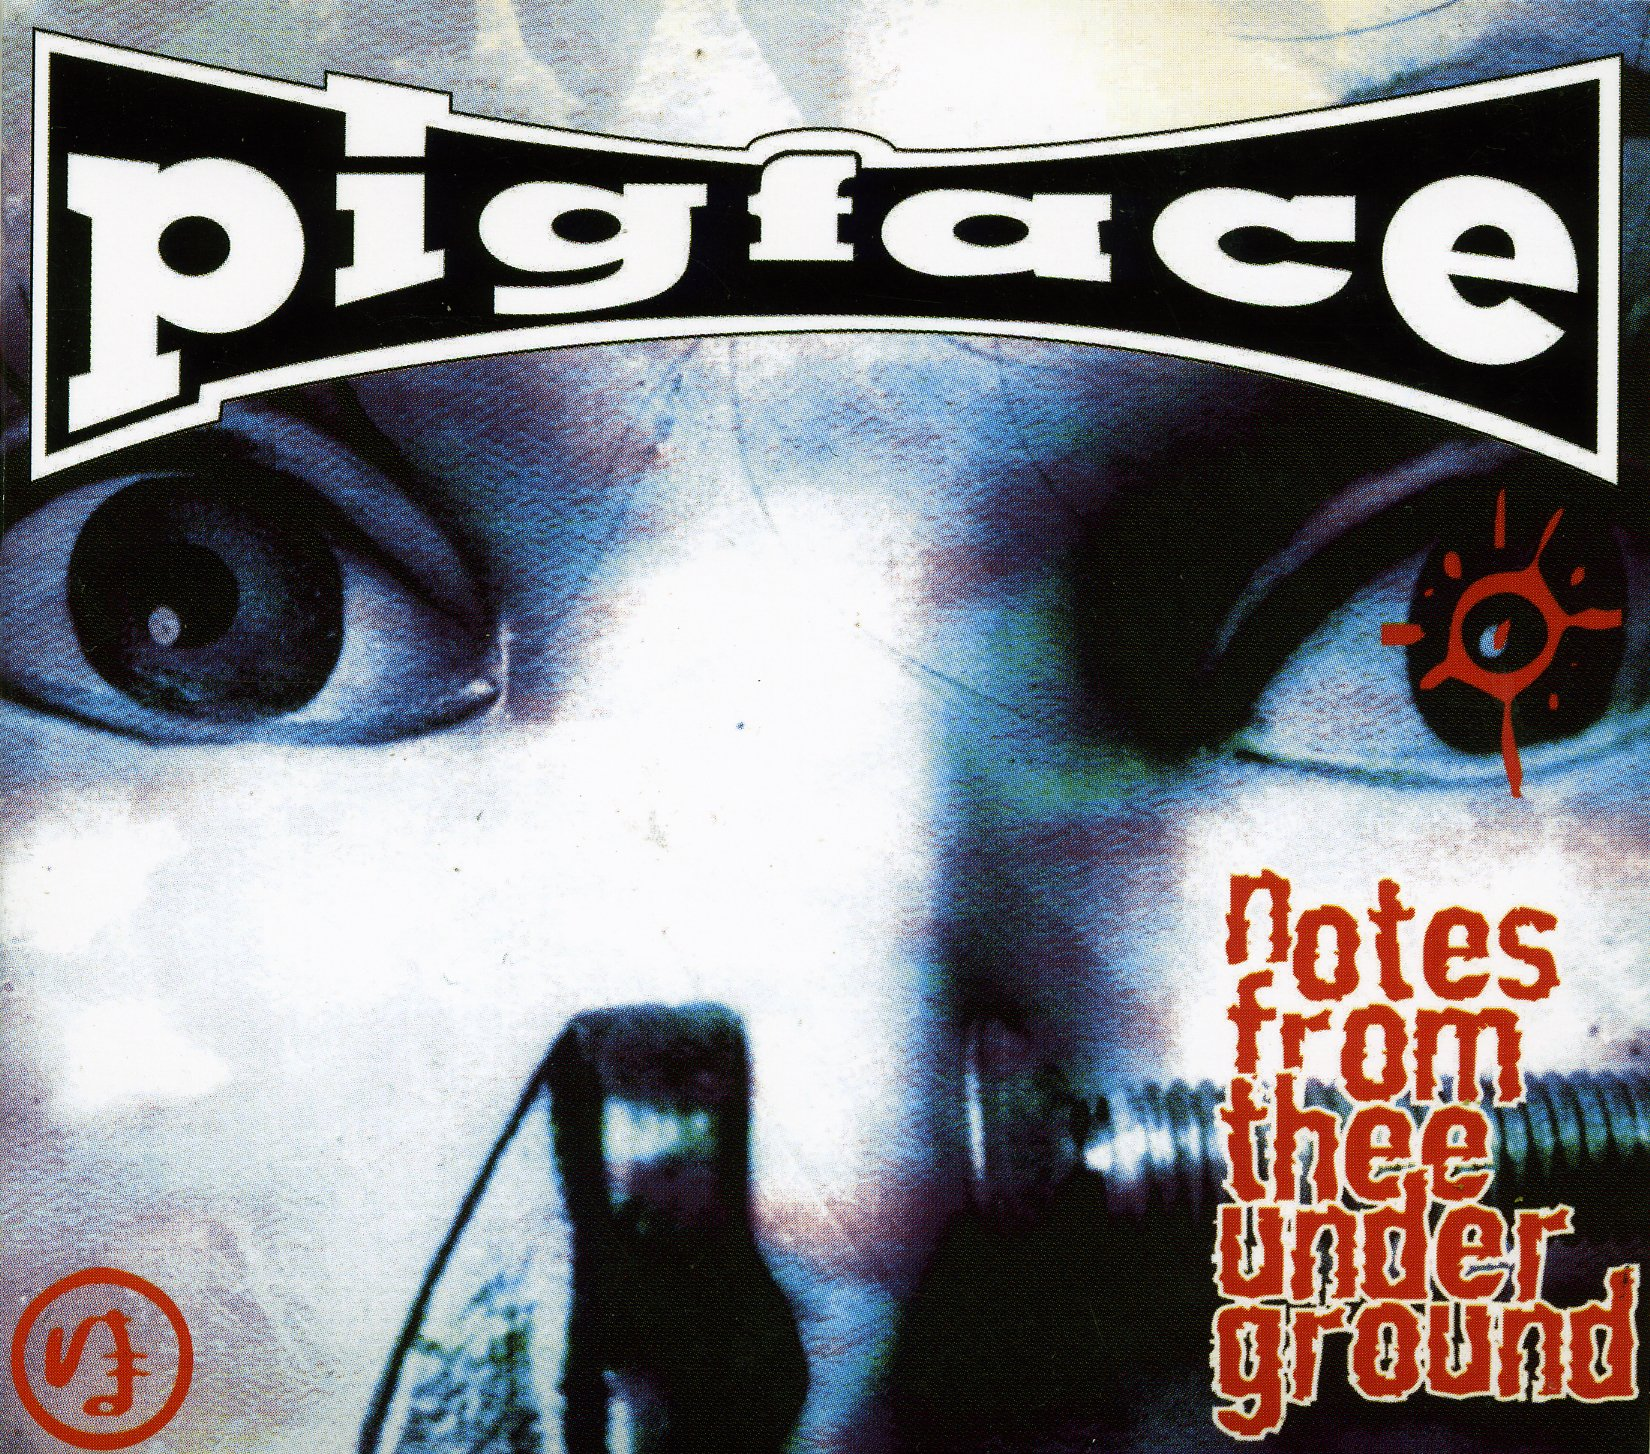 Pigface - Notes from Thee Underground (Limited Edition, Bonus Tracks, 2PC)